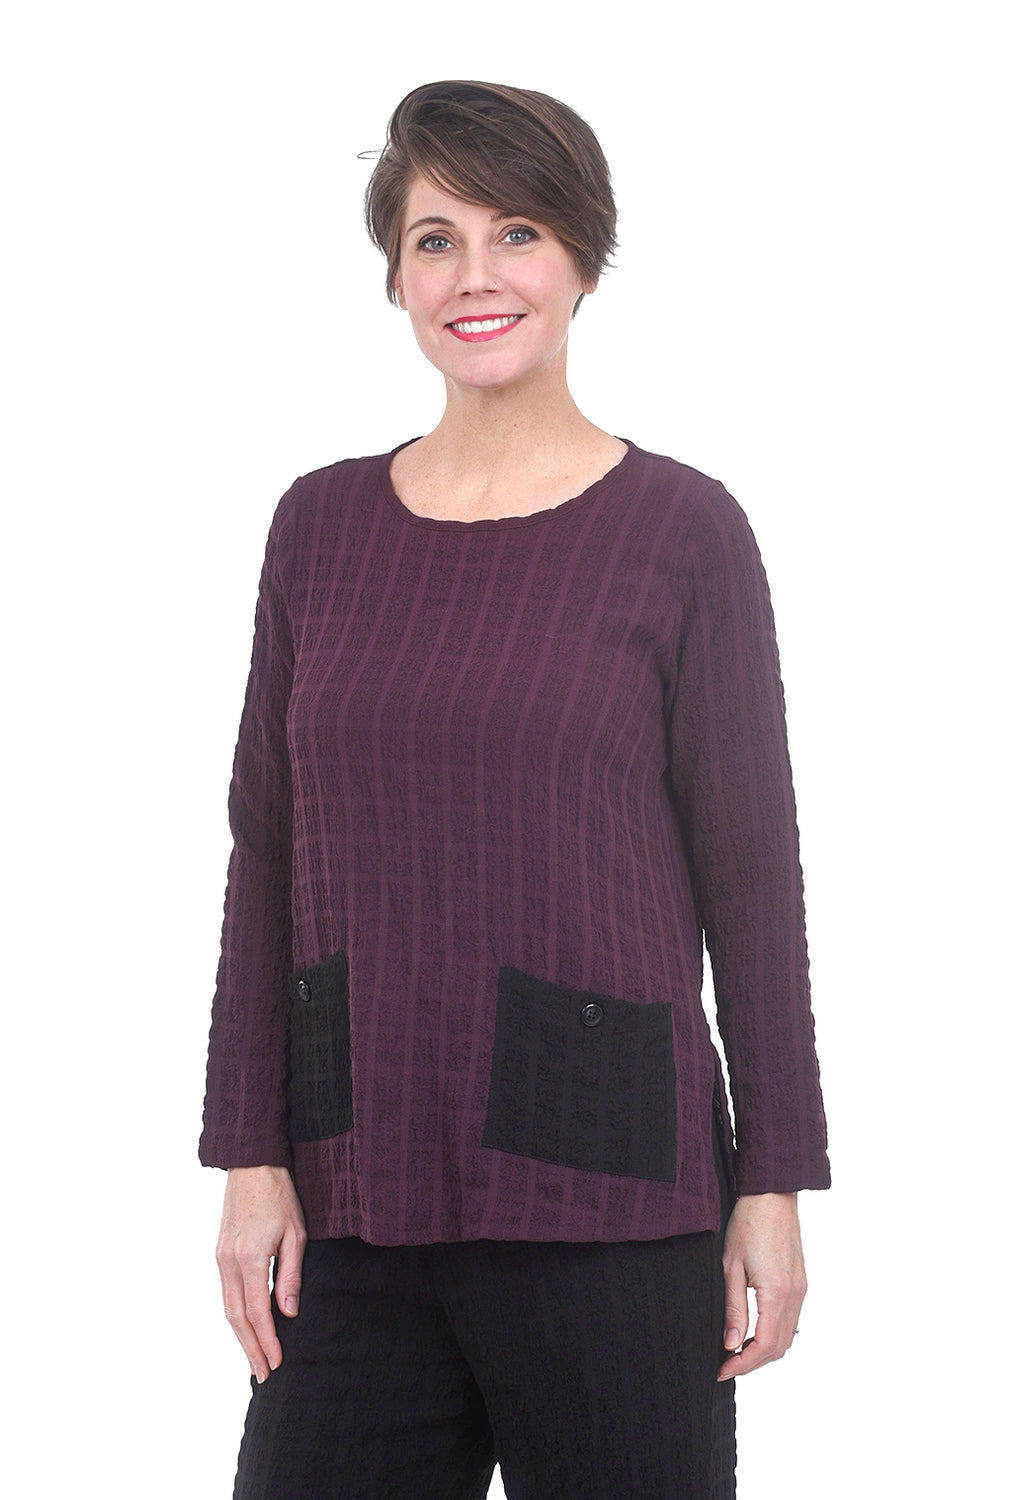 Jason by Comfy USA Rina Top, Wine/Black